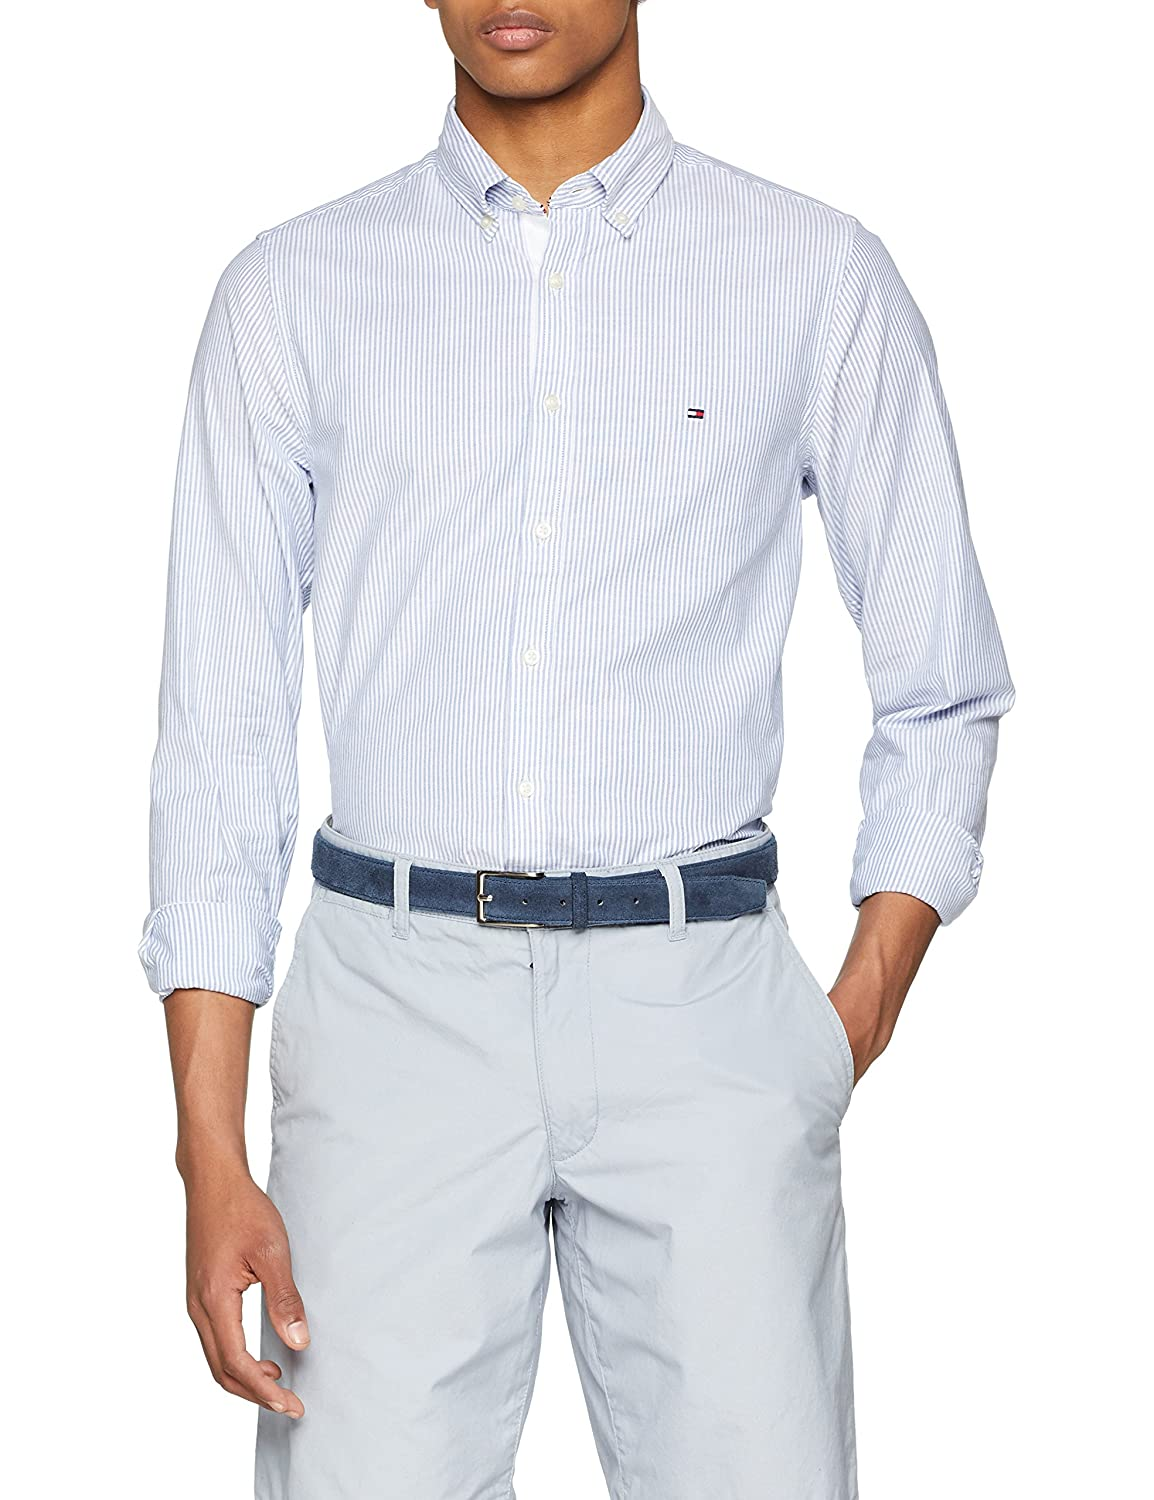 TALLA S. Tommy Hilfiger Core Stretch Slim Stripe Shirt Camisa para Hombre